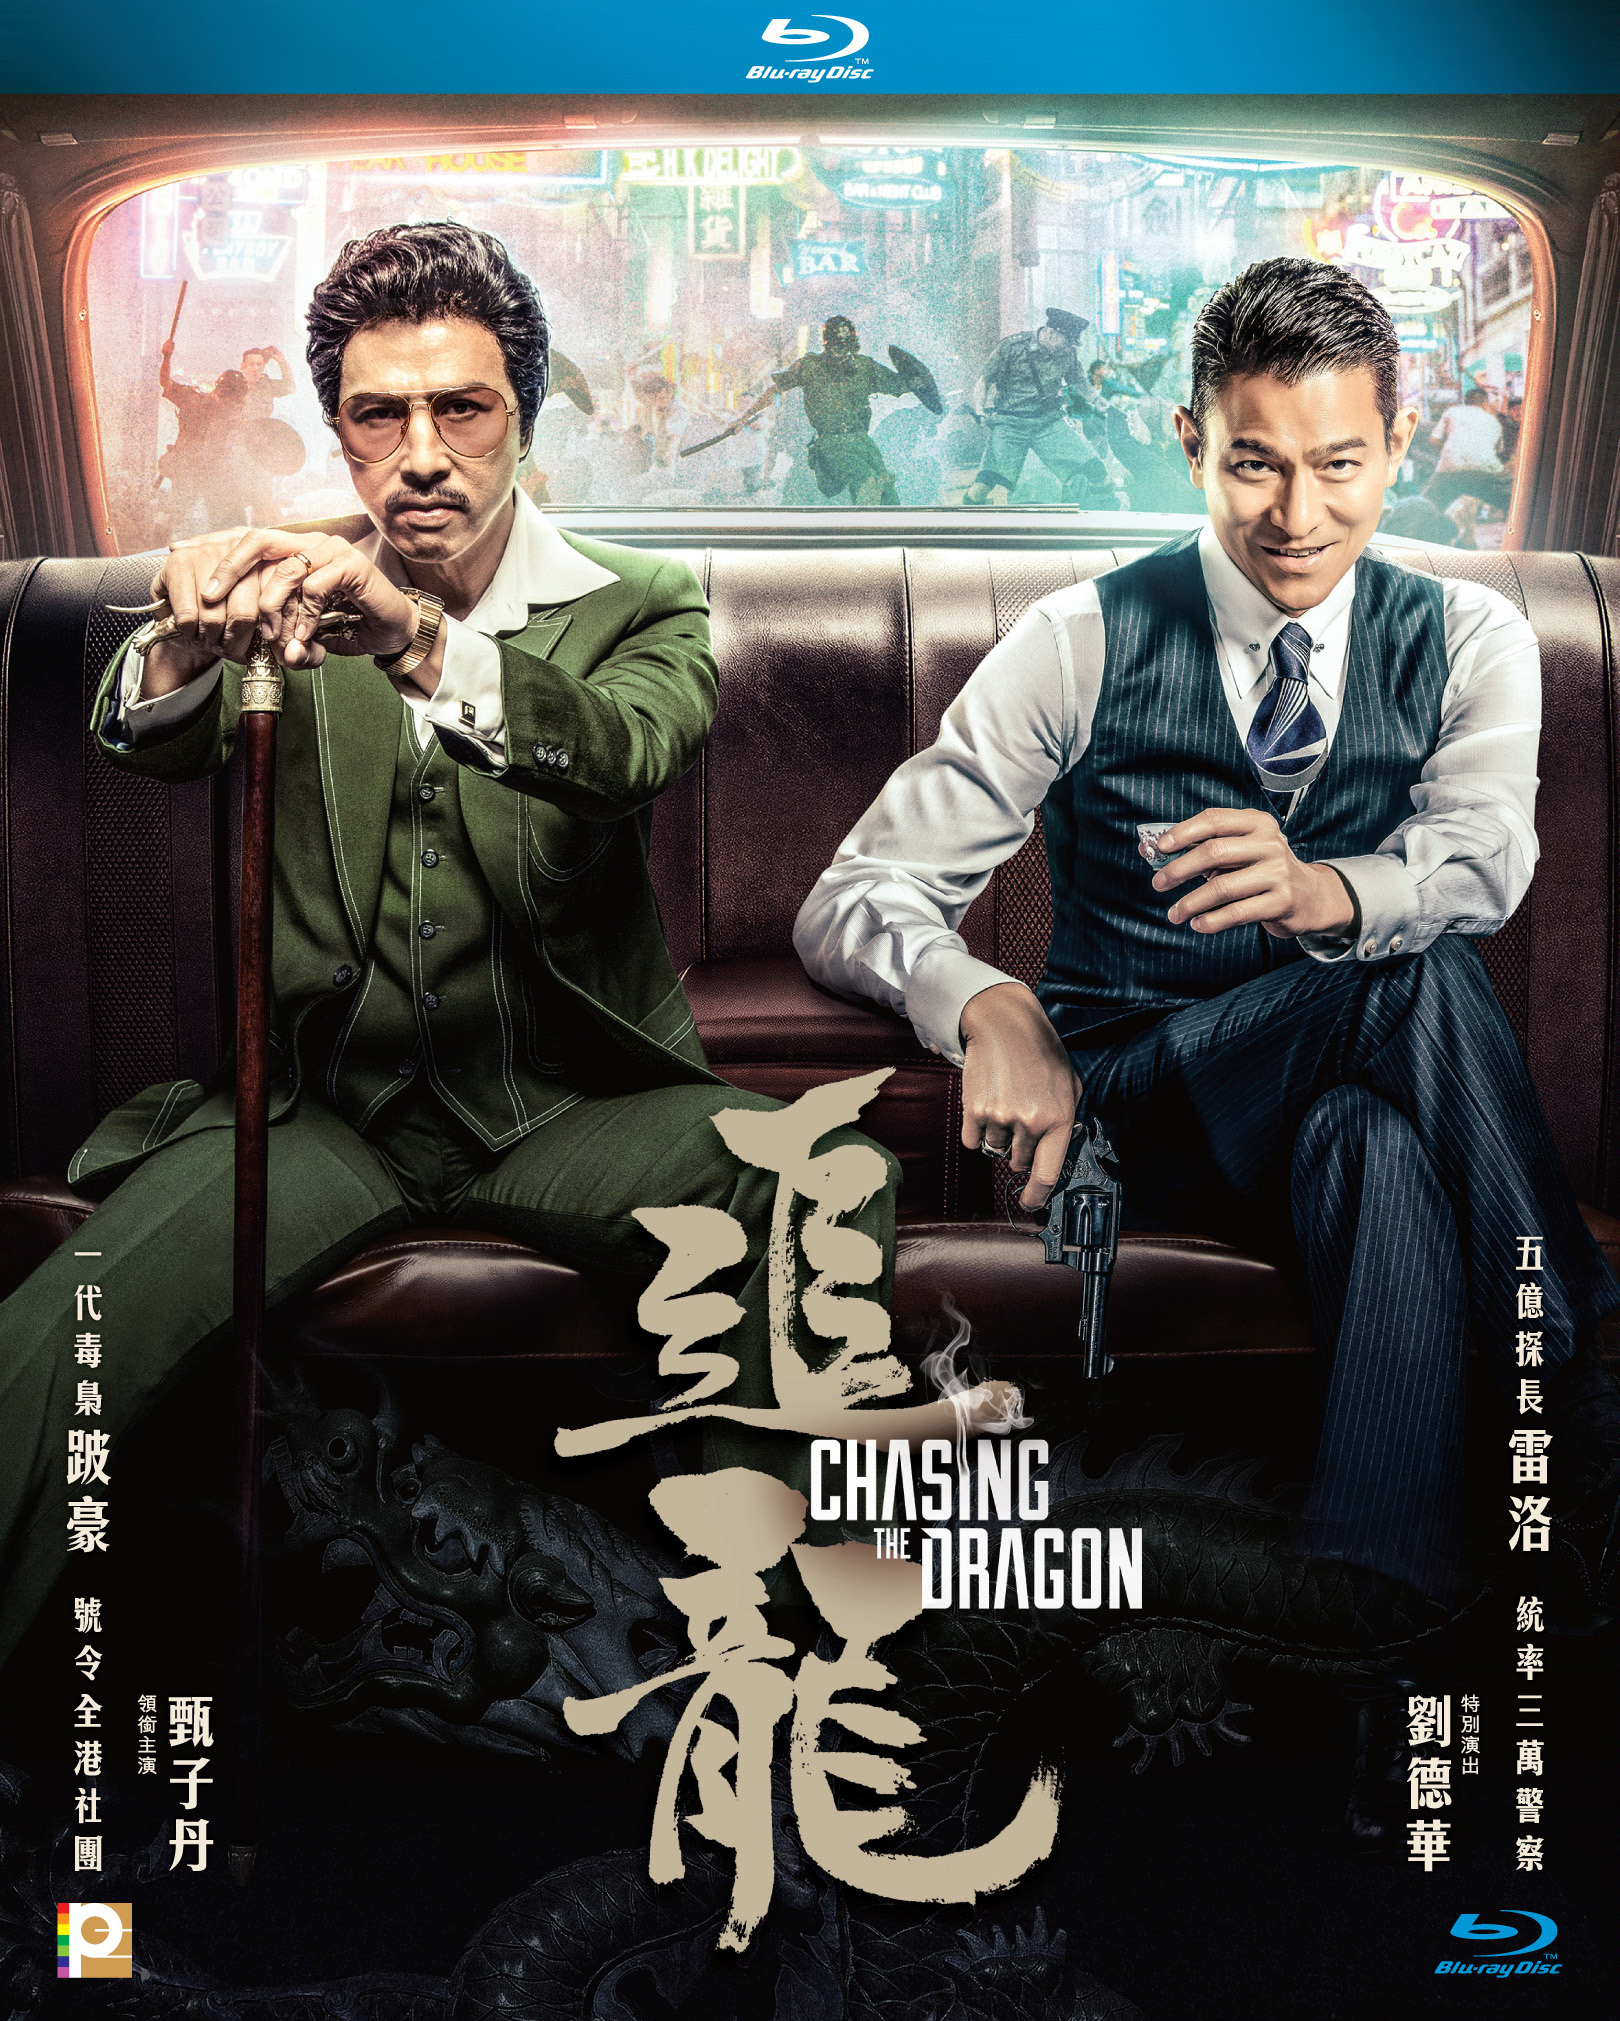 追龍 國粵雙語 原盤繁簡英SUP字幕 Chasing the Dragon 2017 BluRay 1080p 2Audio TrueHD 7.1 x265.10bit-BeiTai